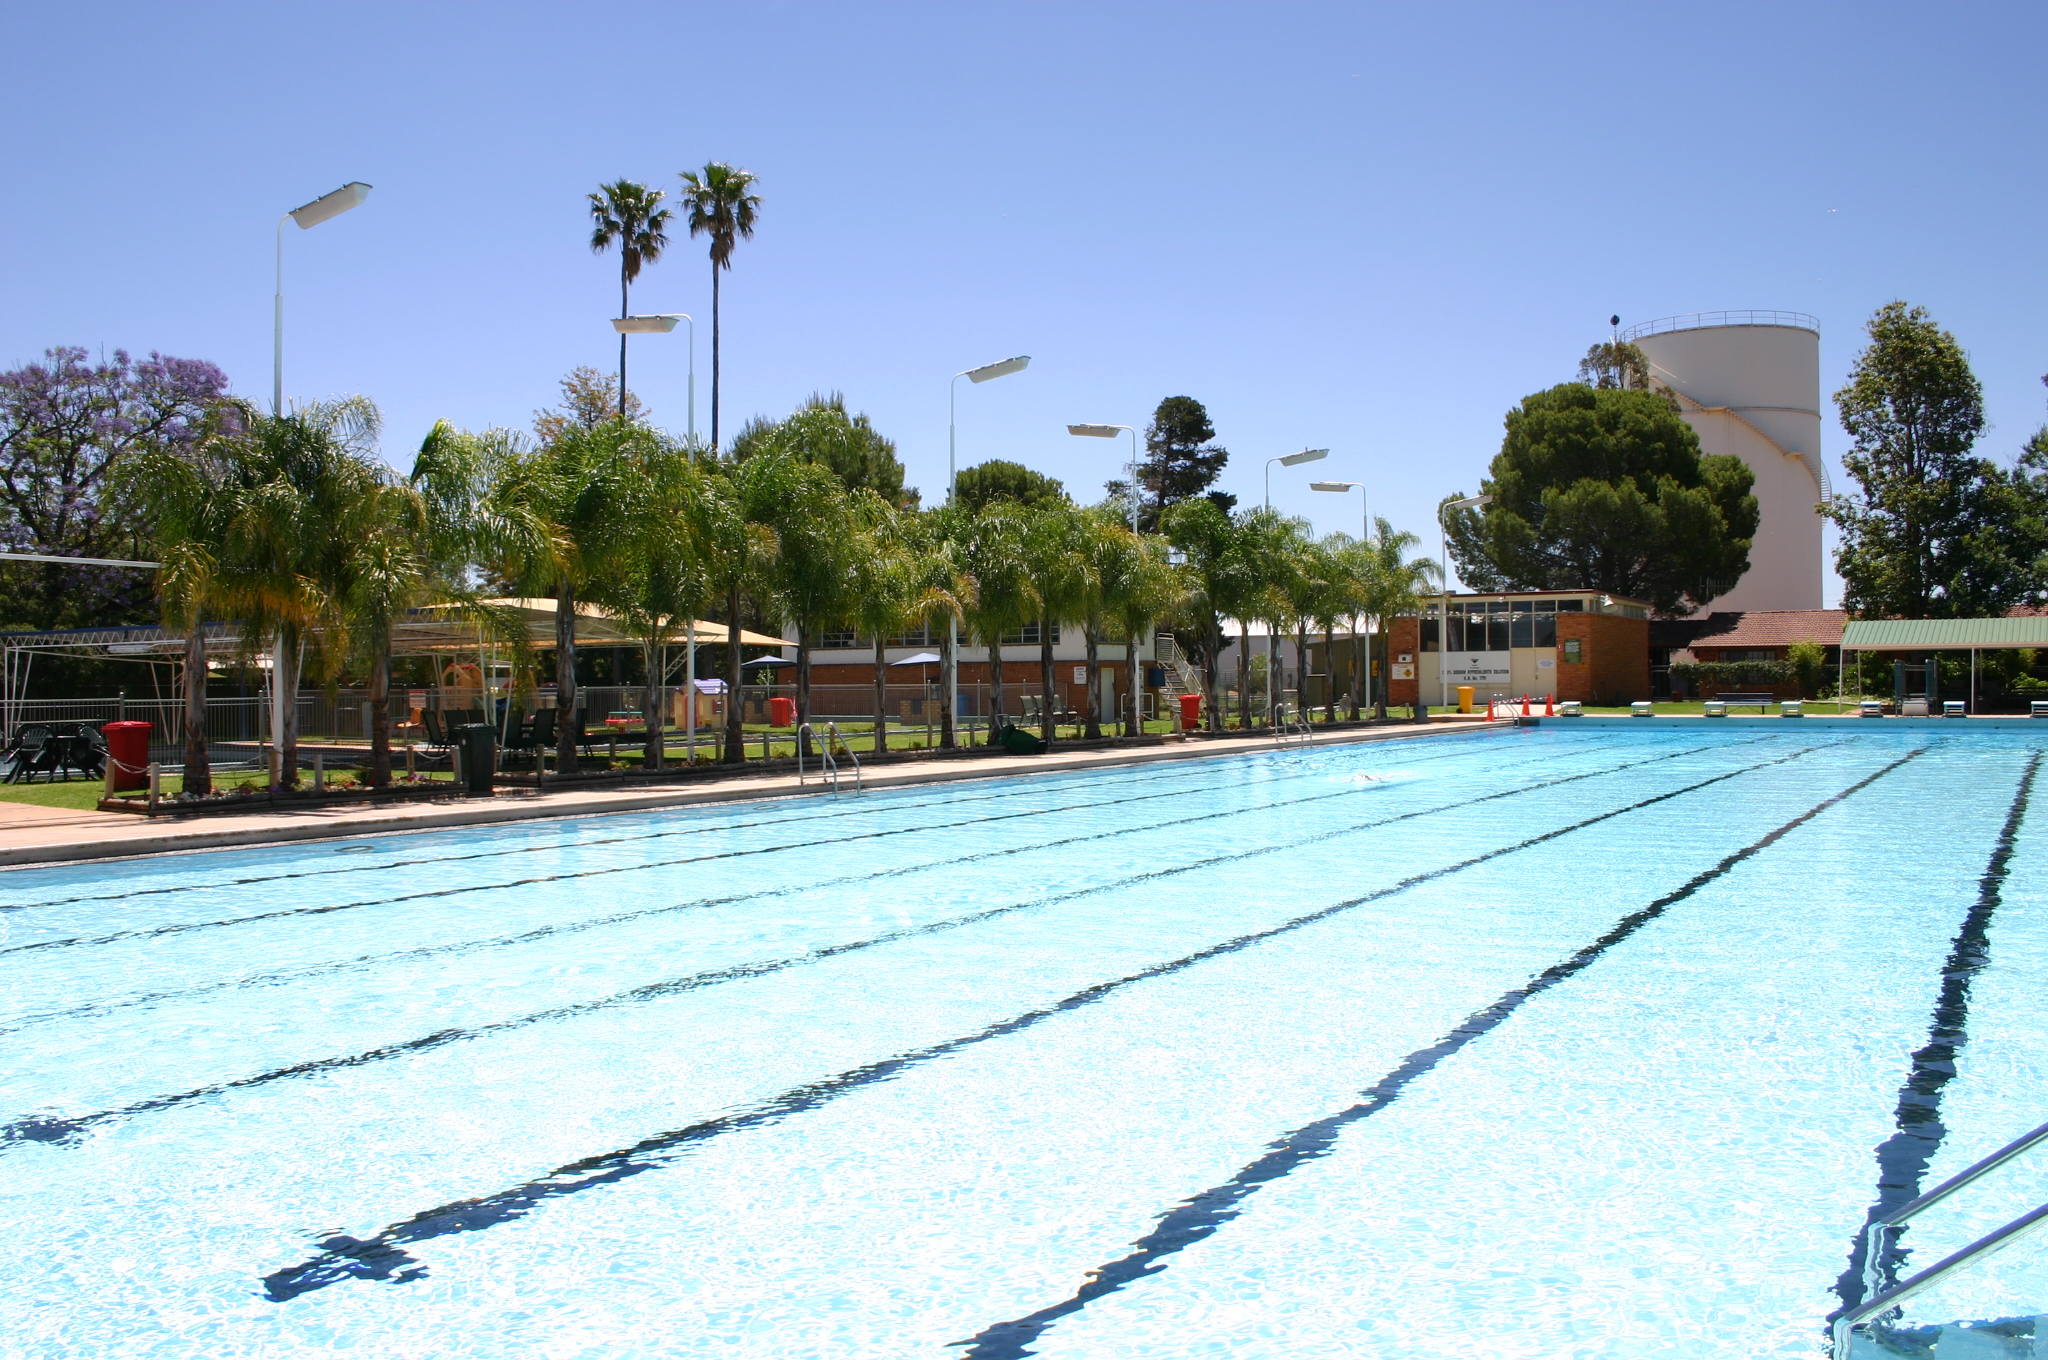 Public Service Announcement - Feedback Regarding Council Pools